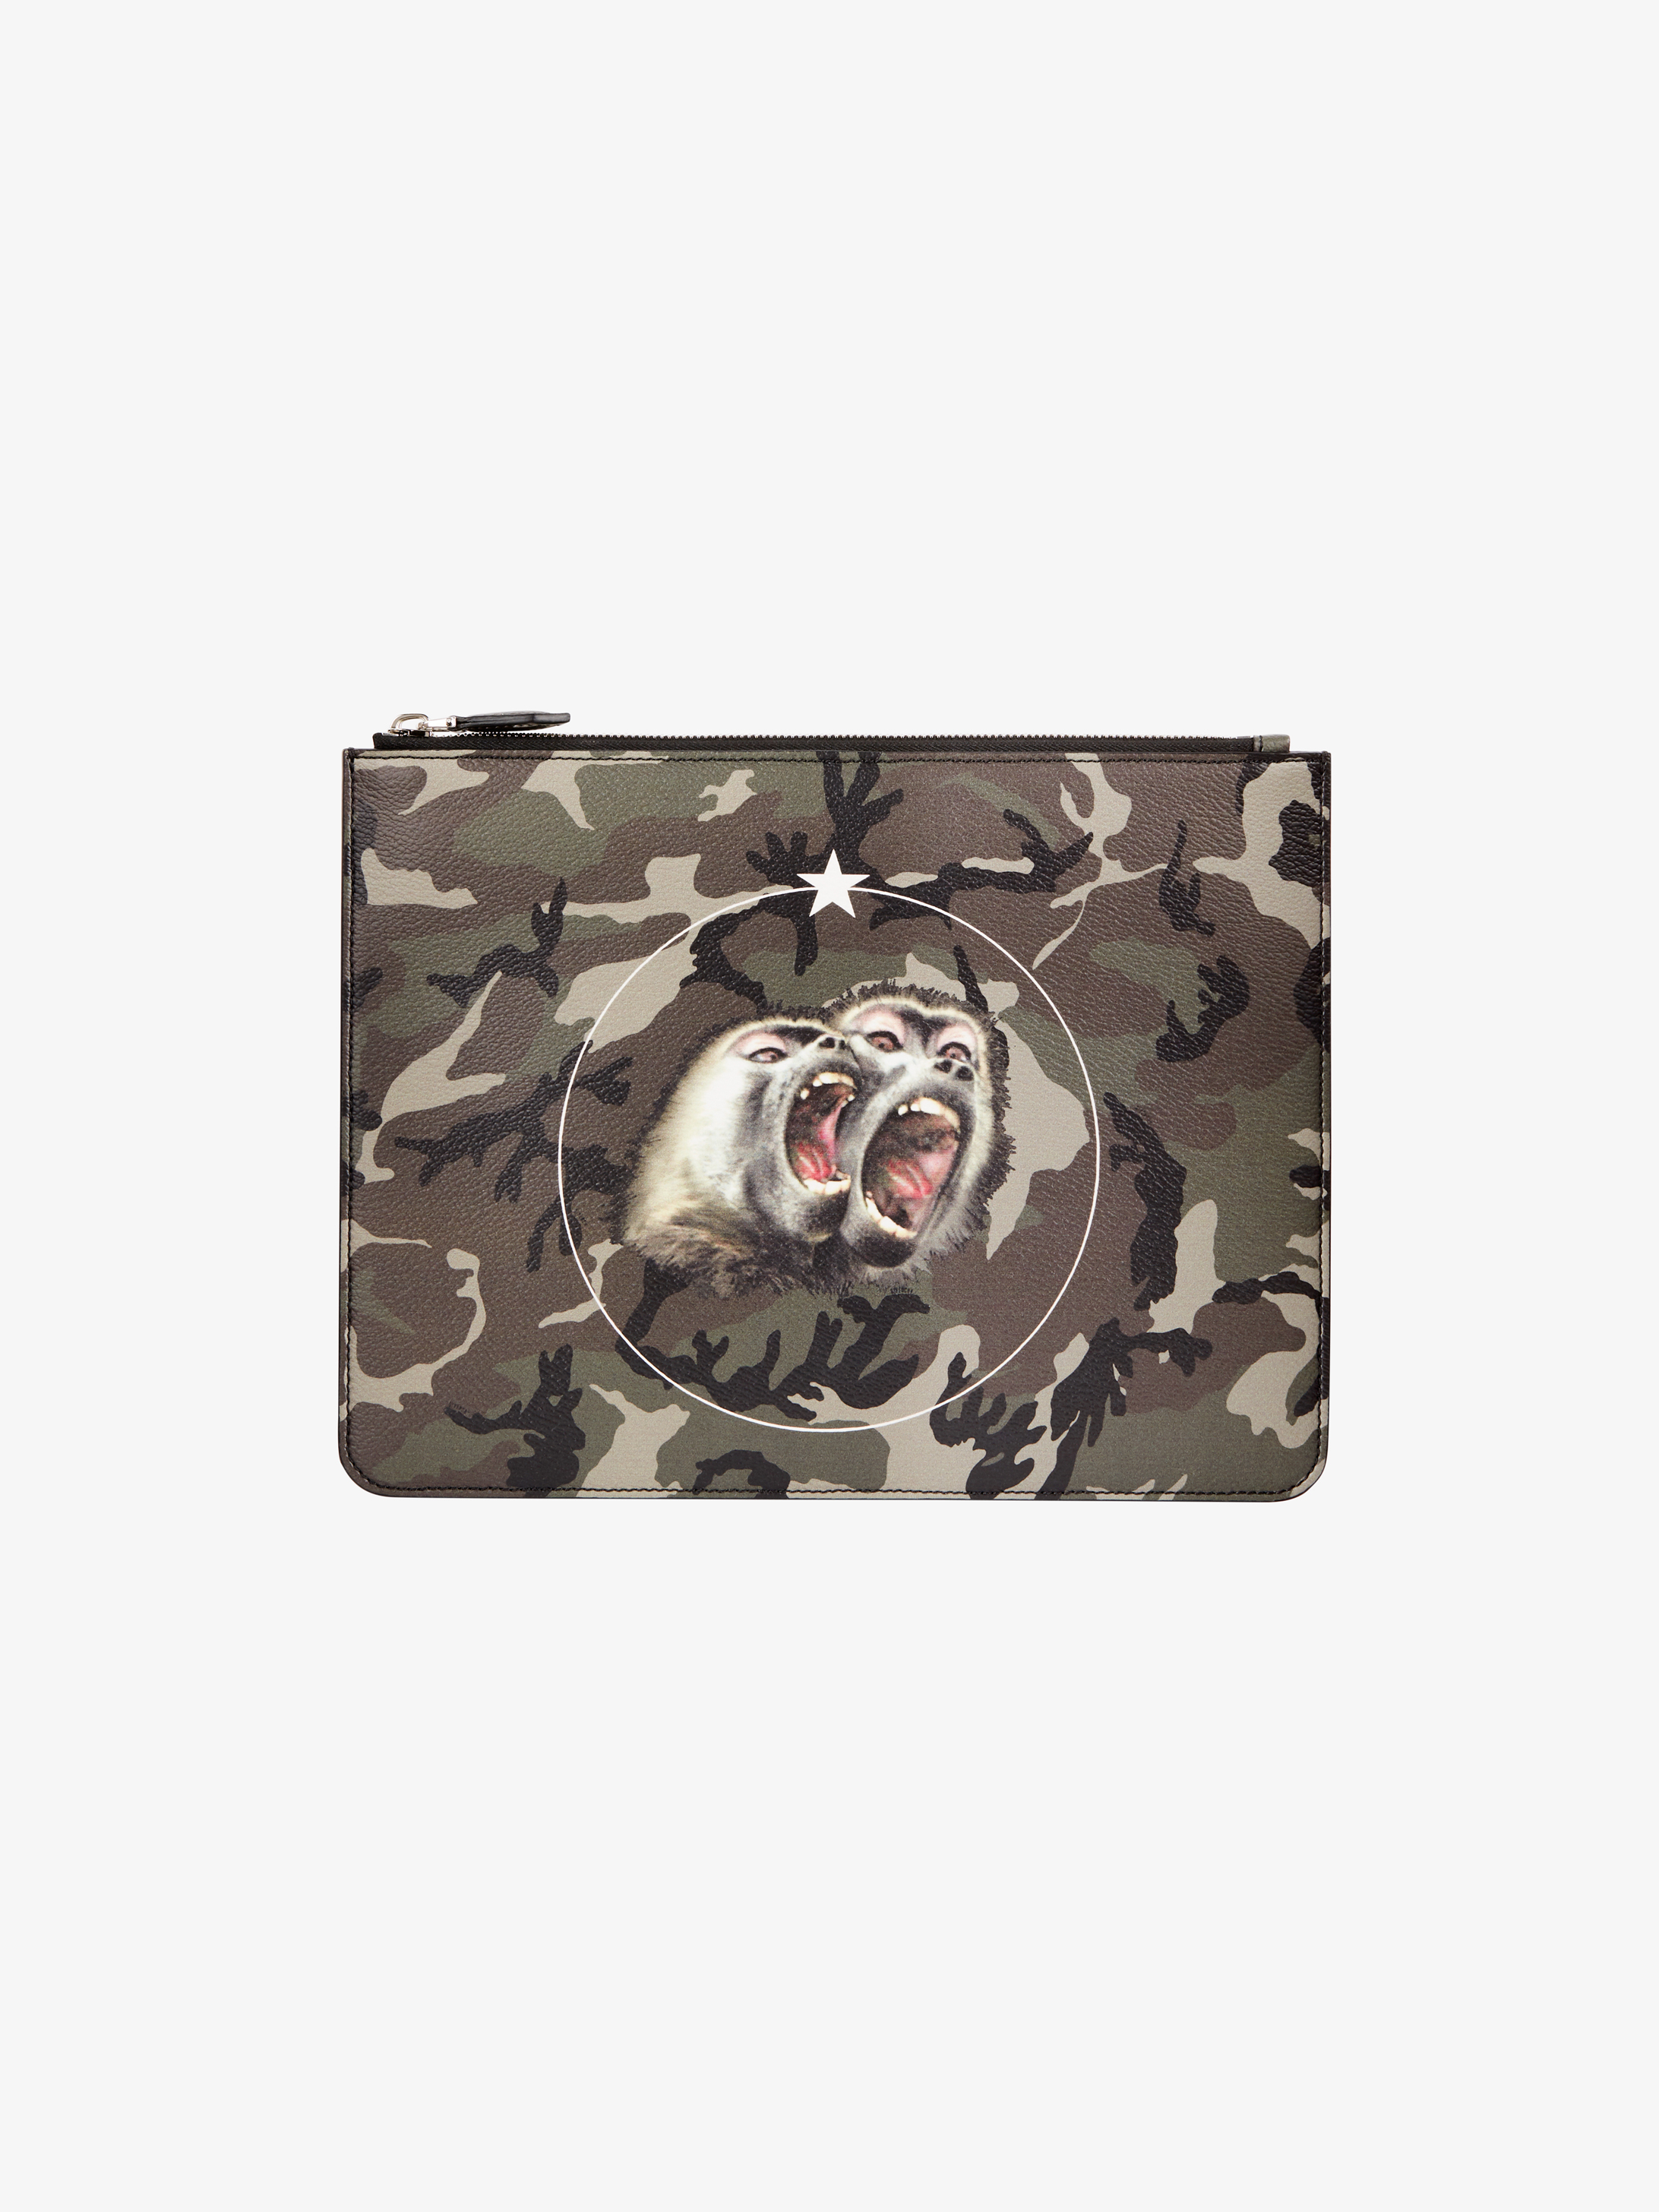 Monkey Brothers printed large pouch